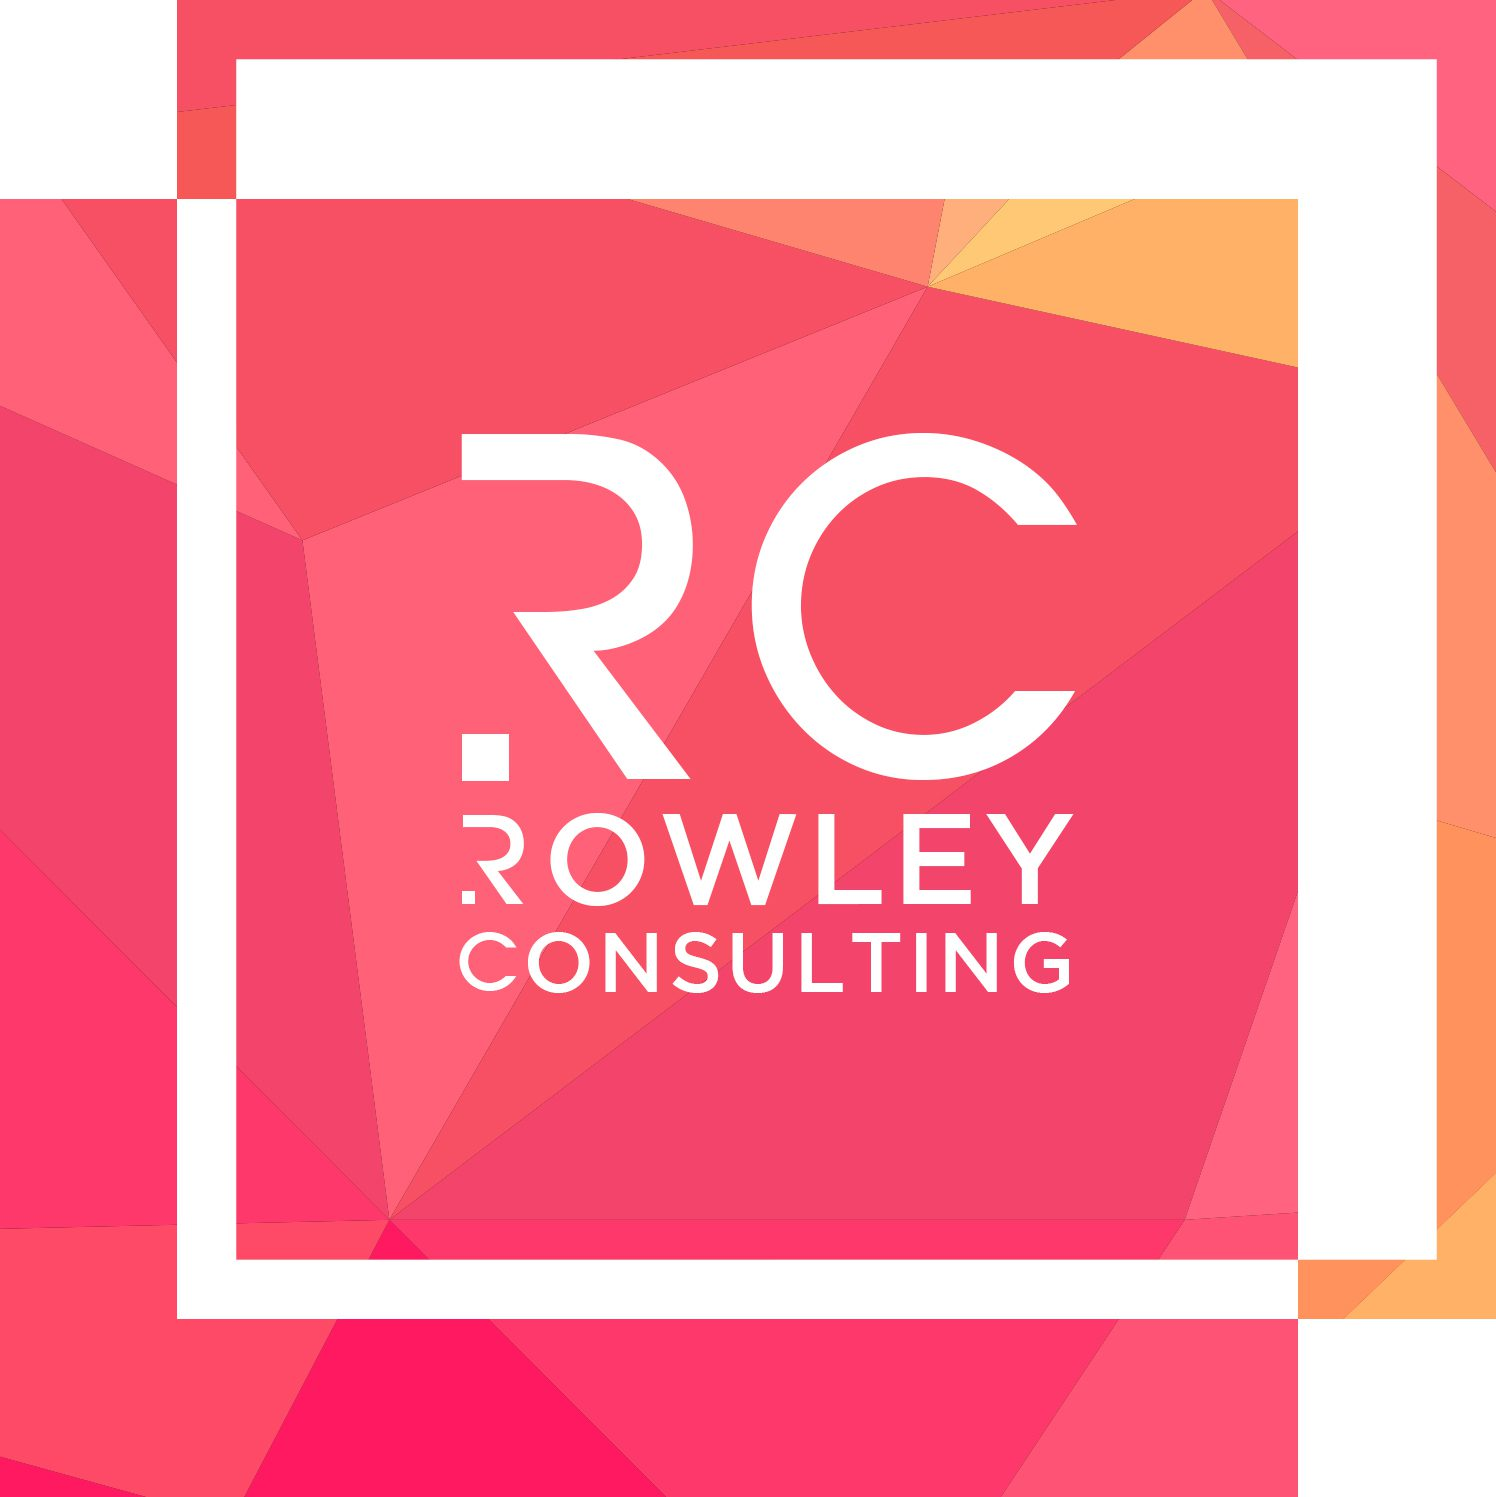 Rowley Consulting